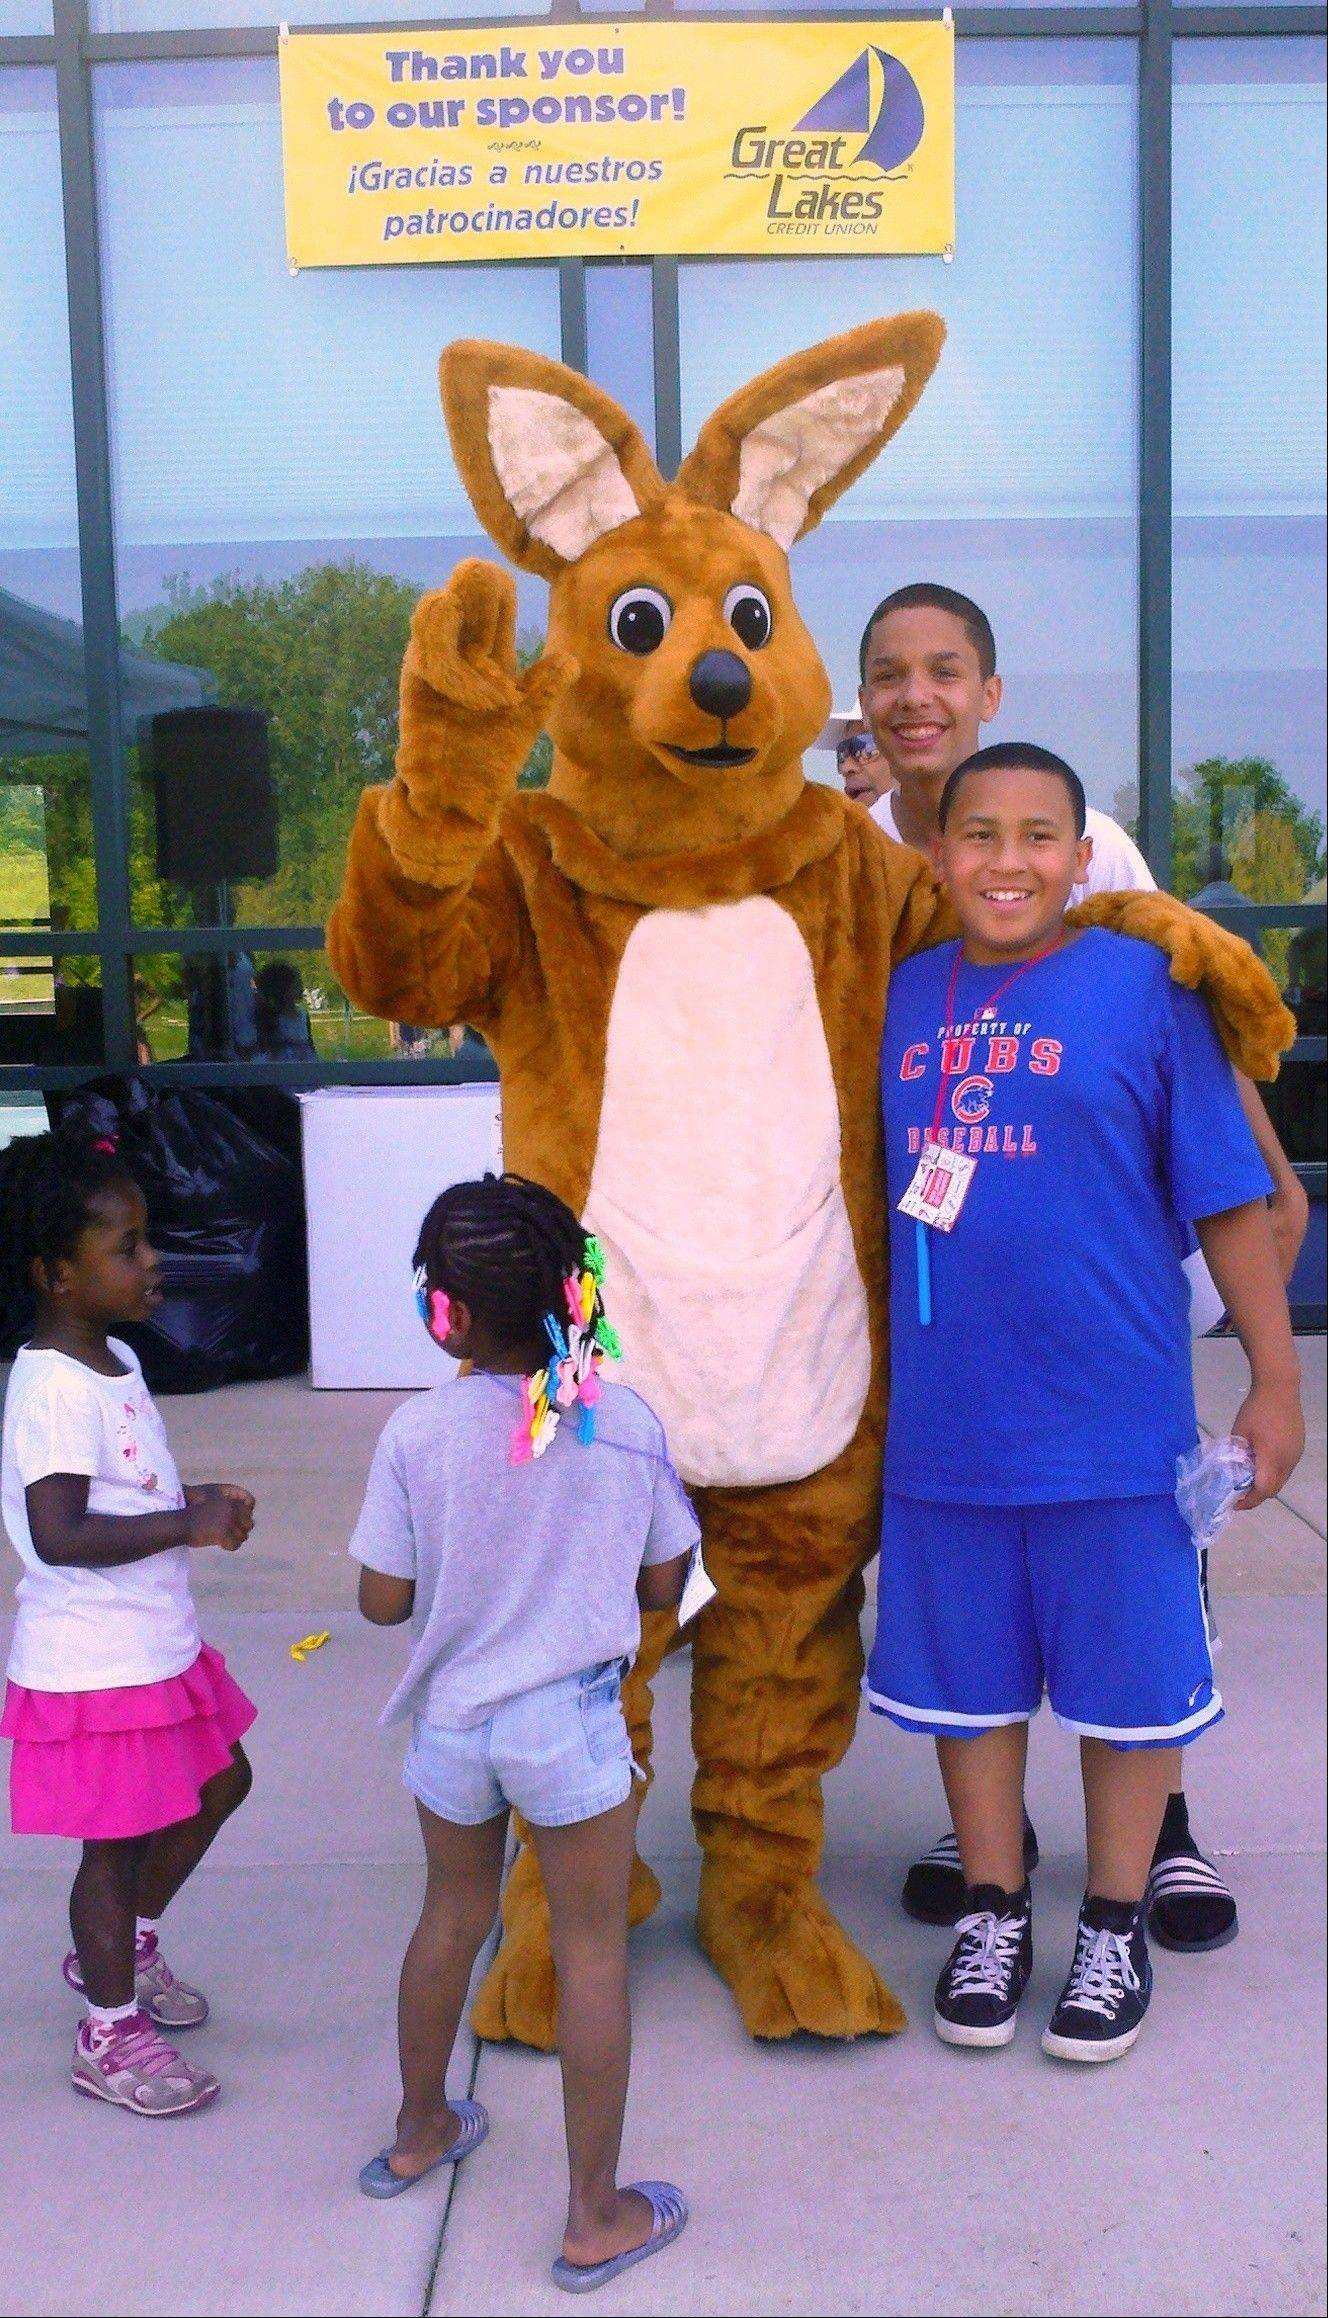 Kirby the Kangaroo, Great Lakes Credit Union's mascot, meets young people at the Kids Nature Funfest at the Greenbelt Cultural Center in North Chicago.